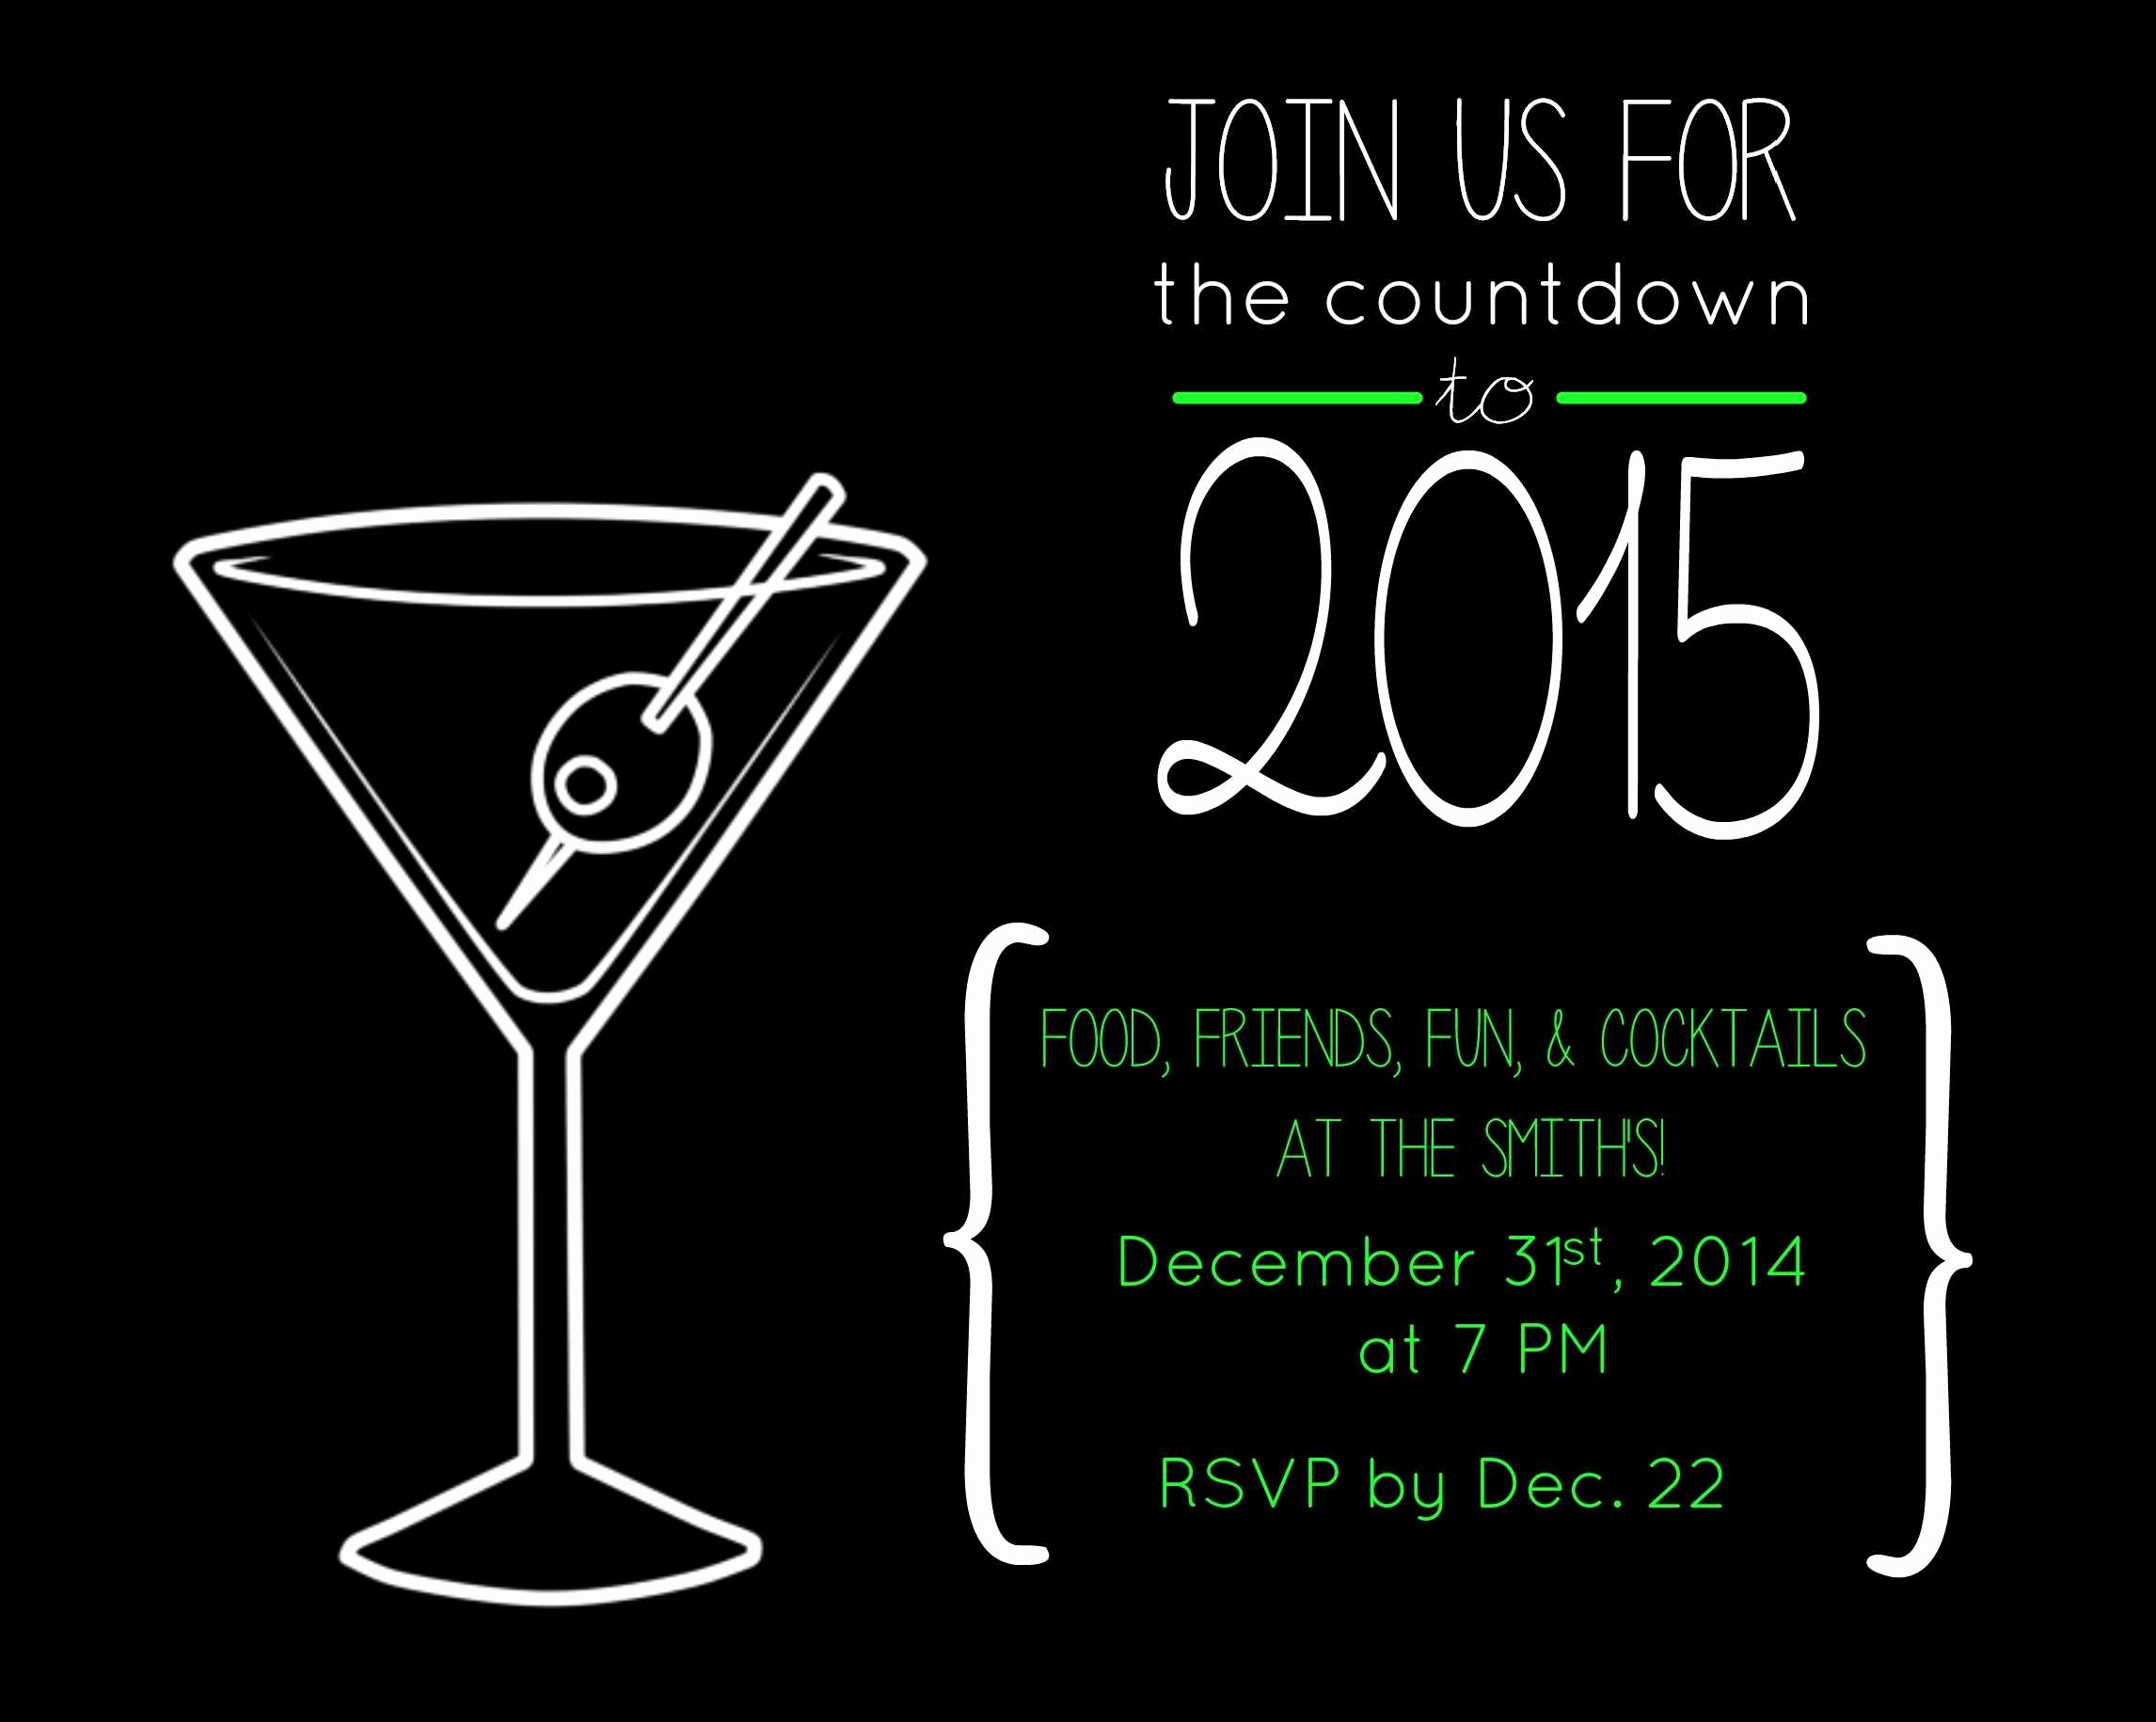 New Years Eve Invitation Templates Luxury Free New Year's Eve Party Invite to Print or Send